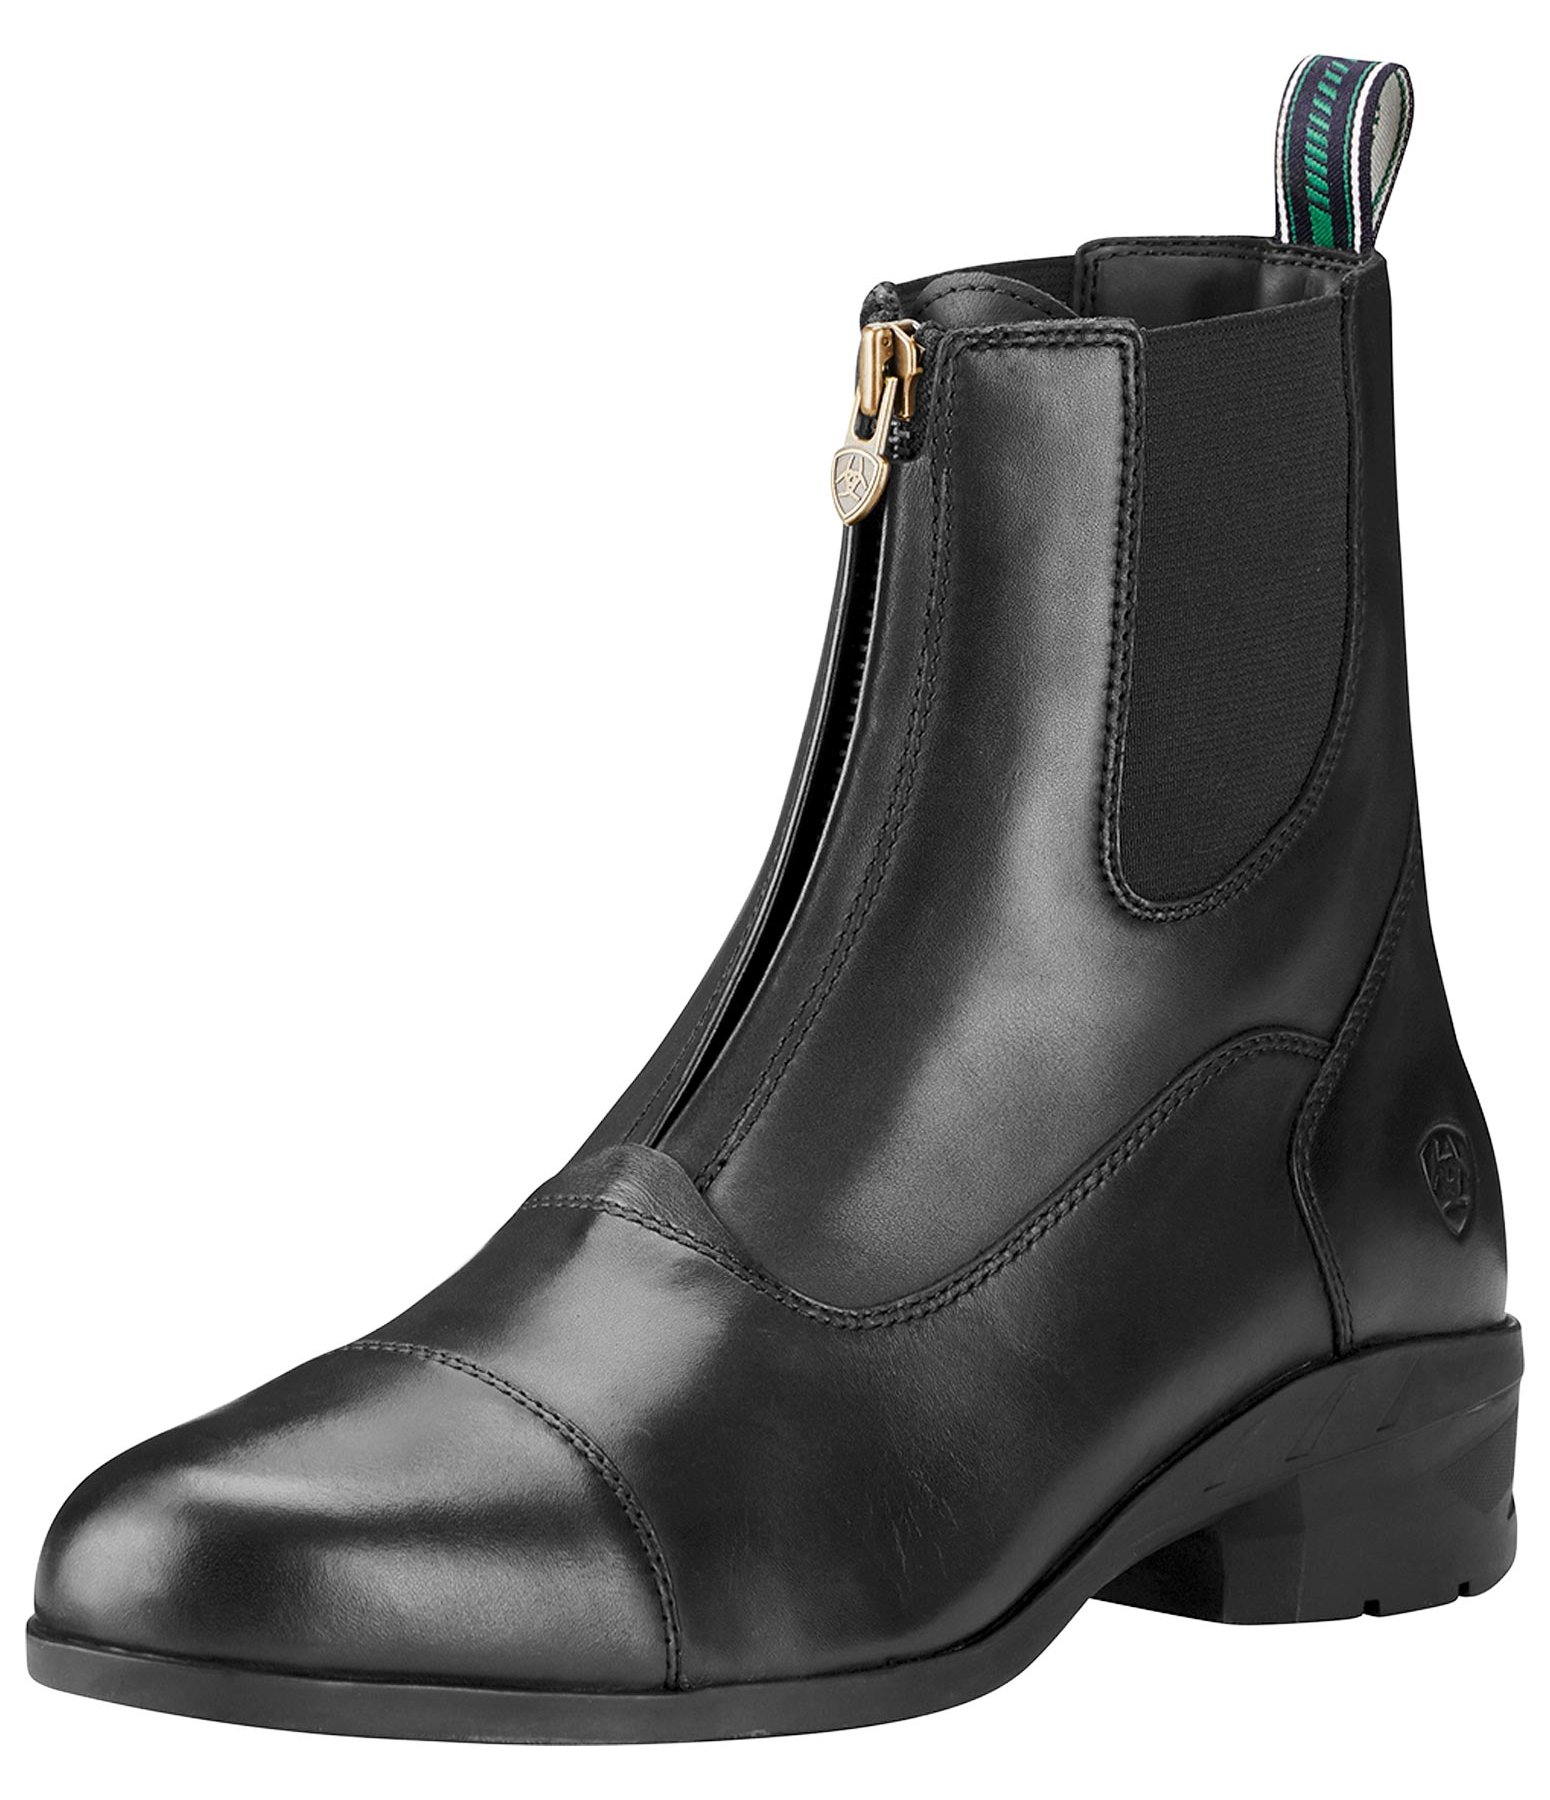 Ariat Herren Stiefelette Heritage IV ZIP in black